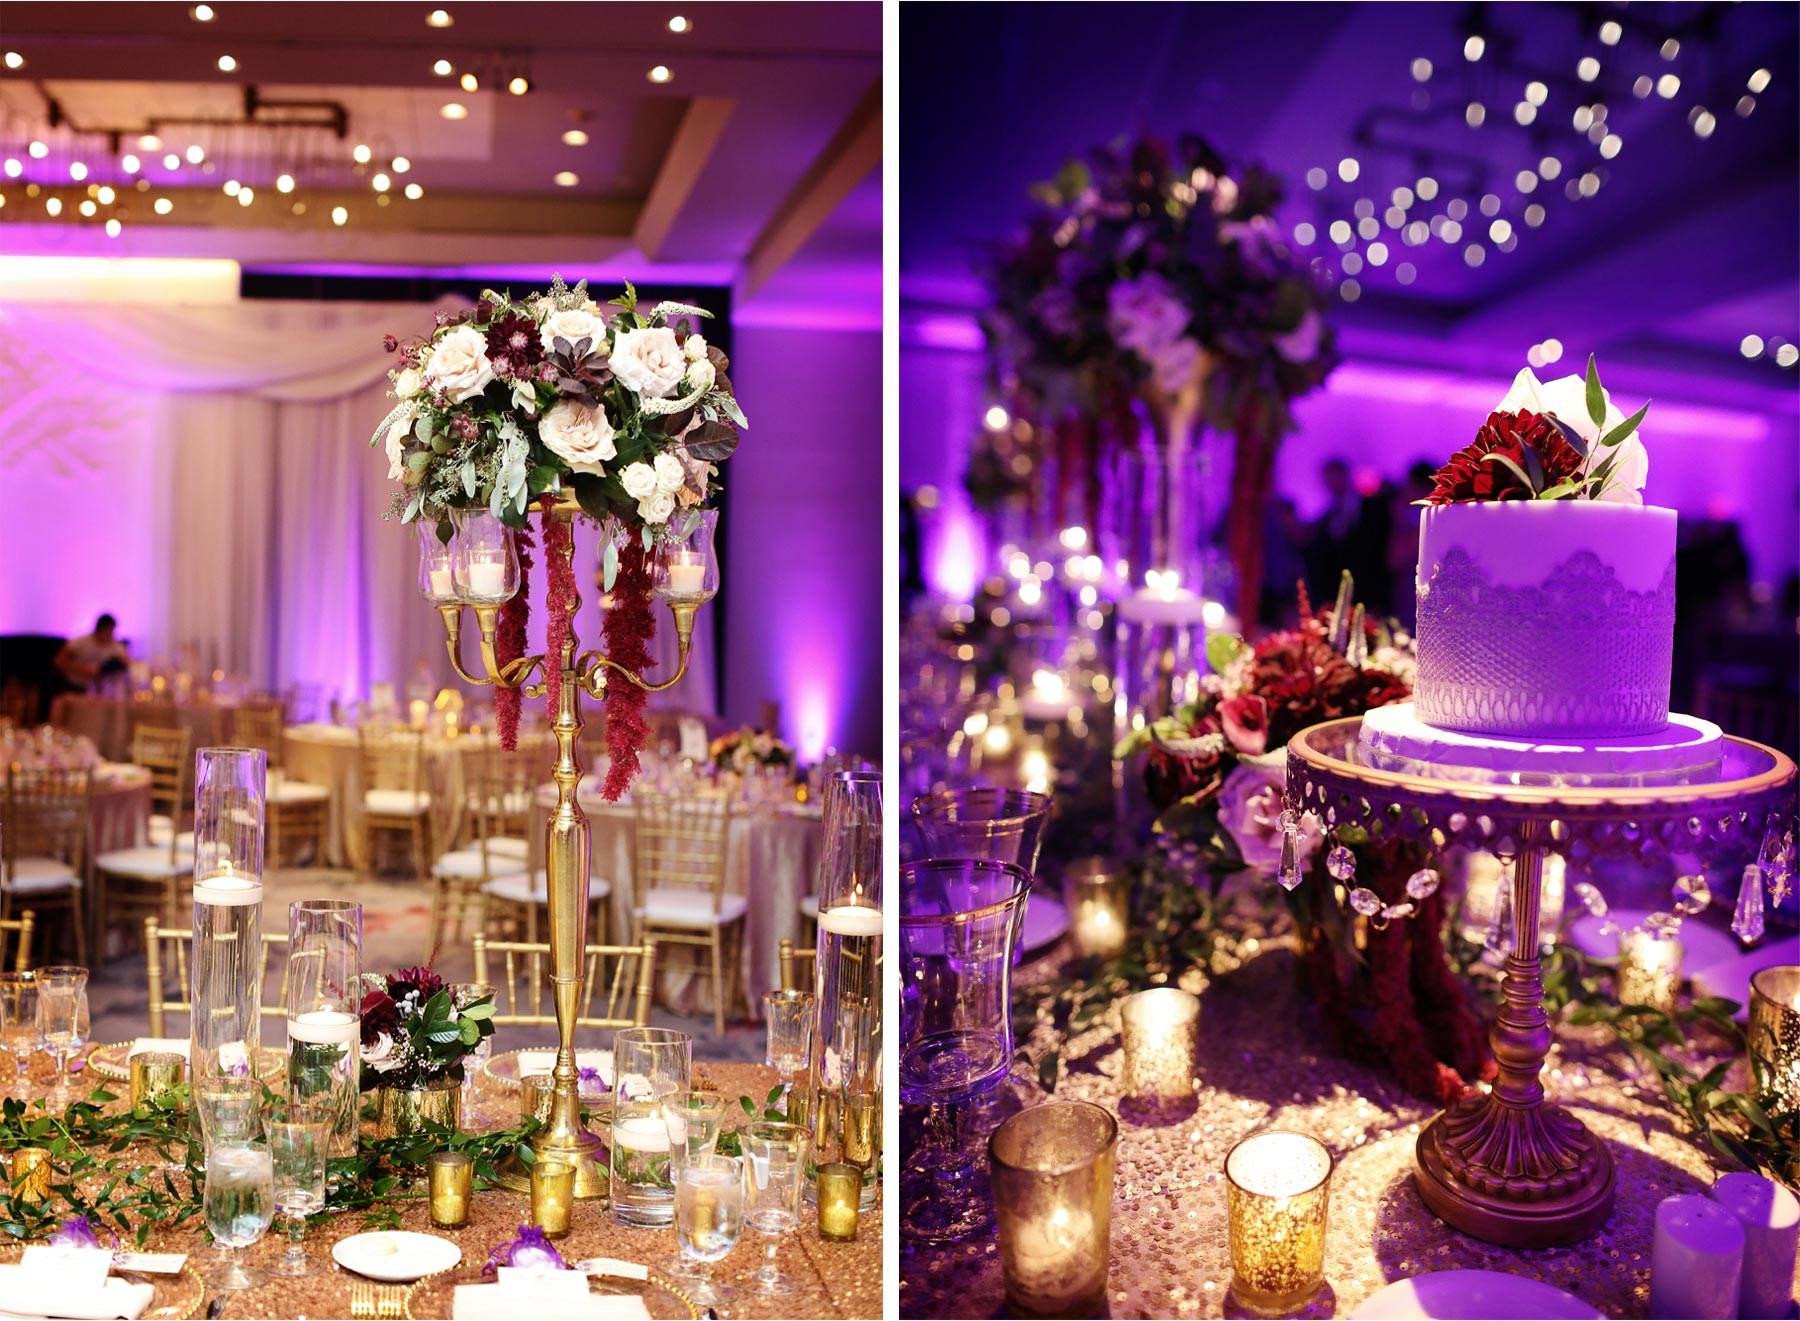 17-Minneapolis-Minnesota-Wedding-Photography-by-Vick-Photography-Loews-Hotel-Reception-Pink-Lighting-Caitlin-and-Alec.jpg